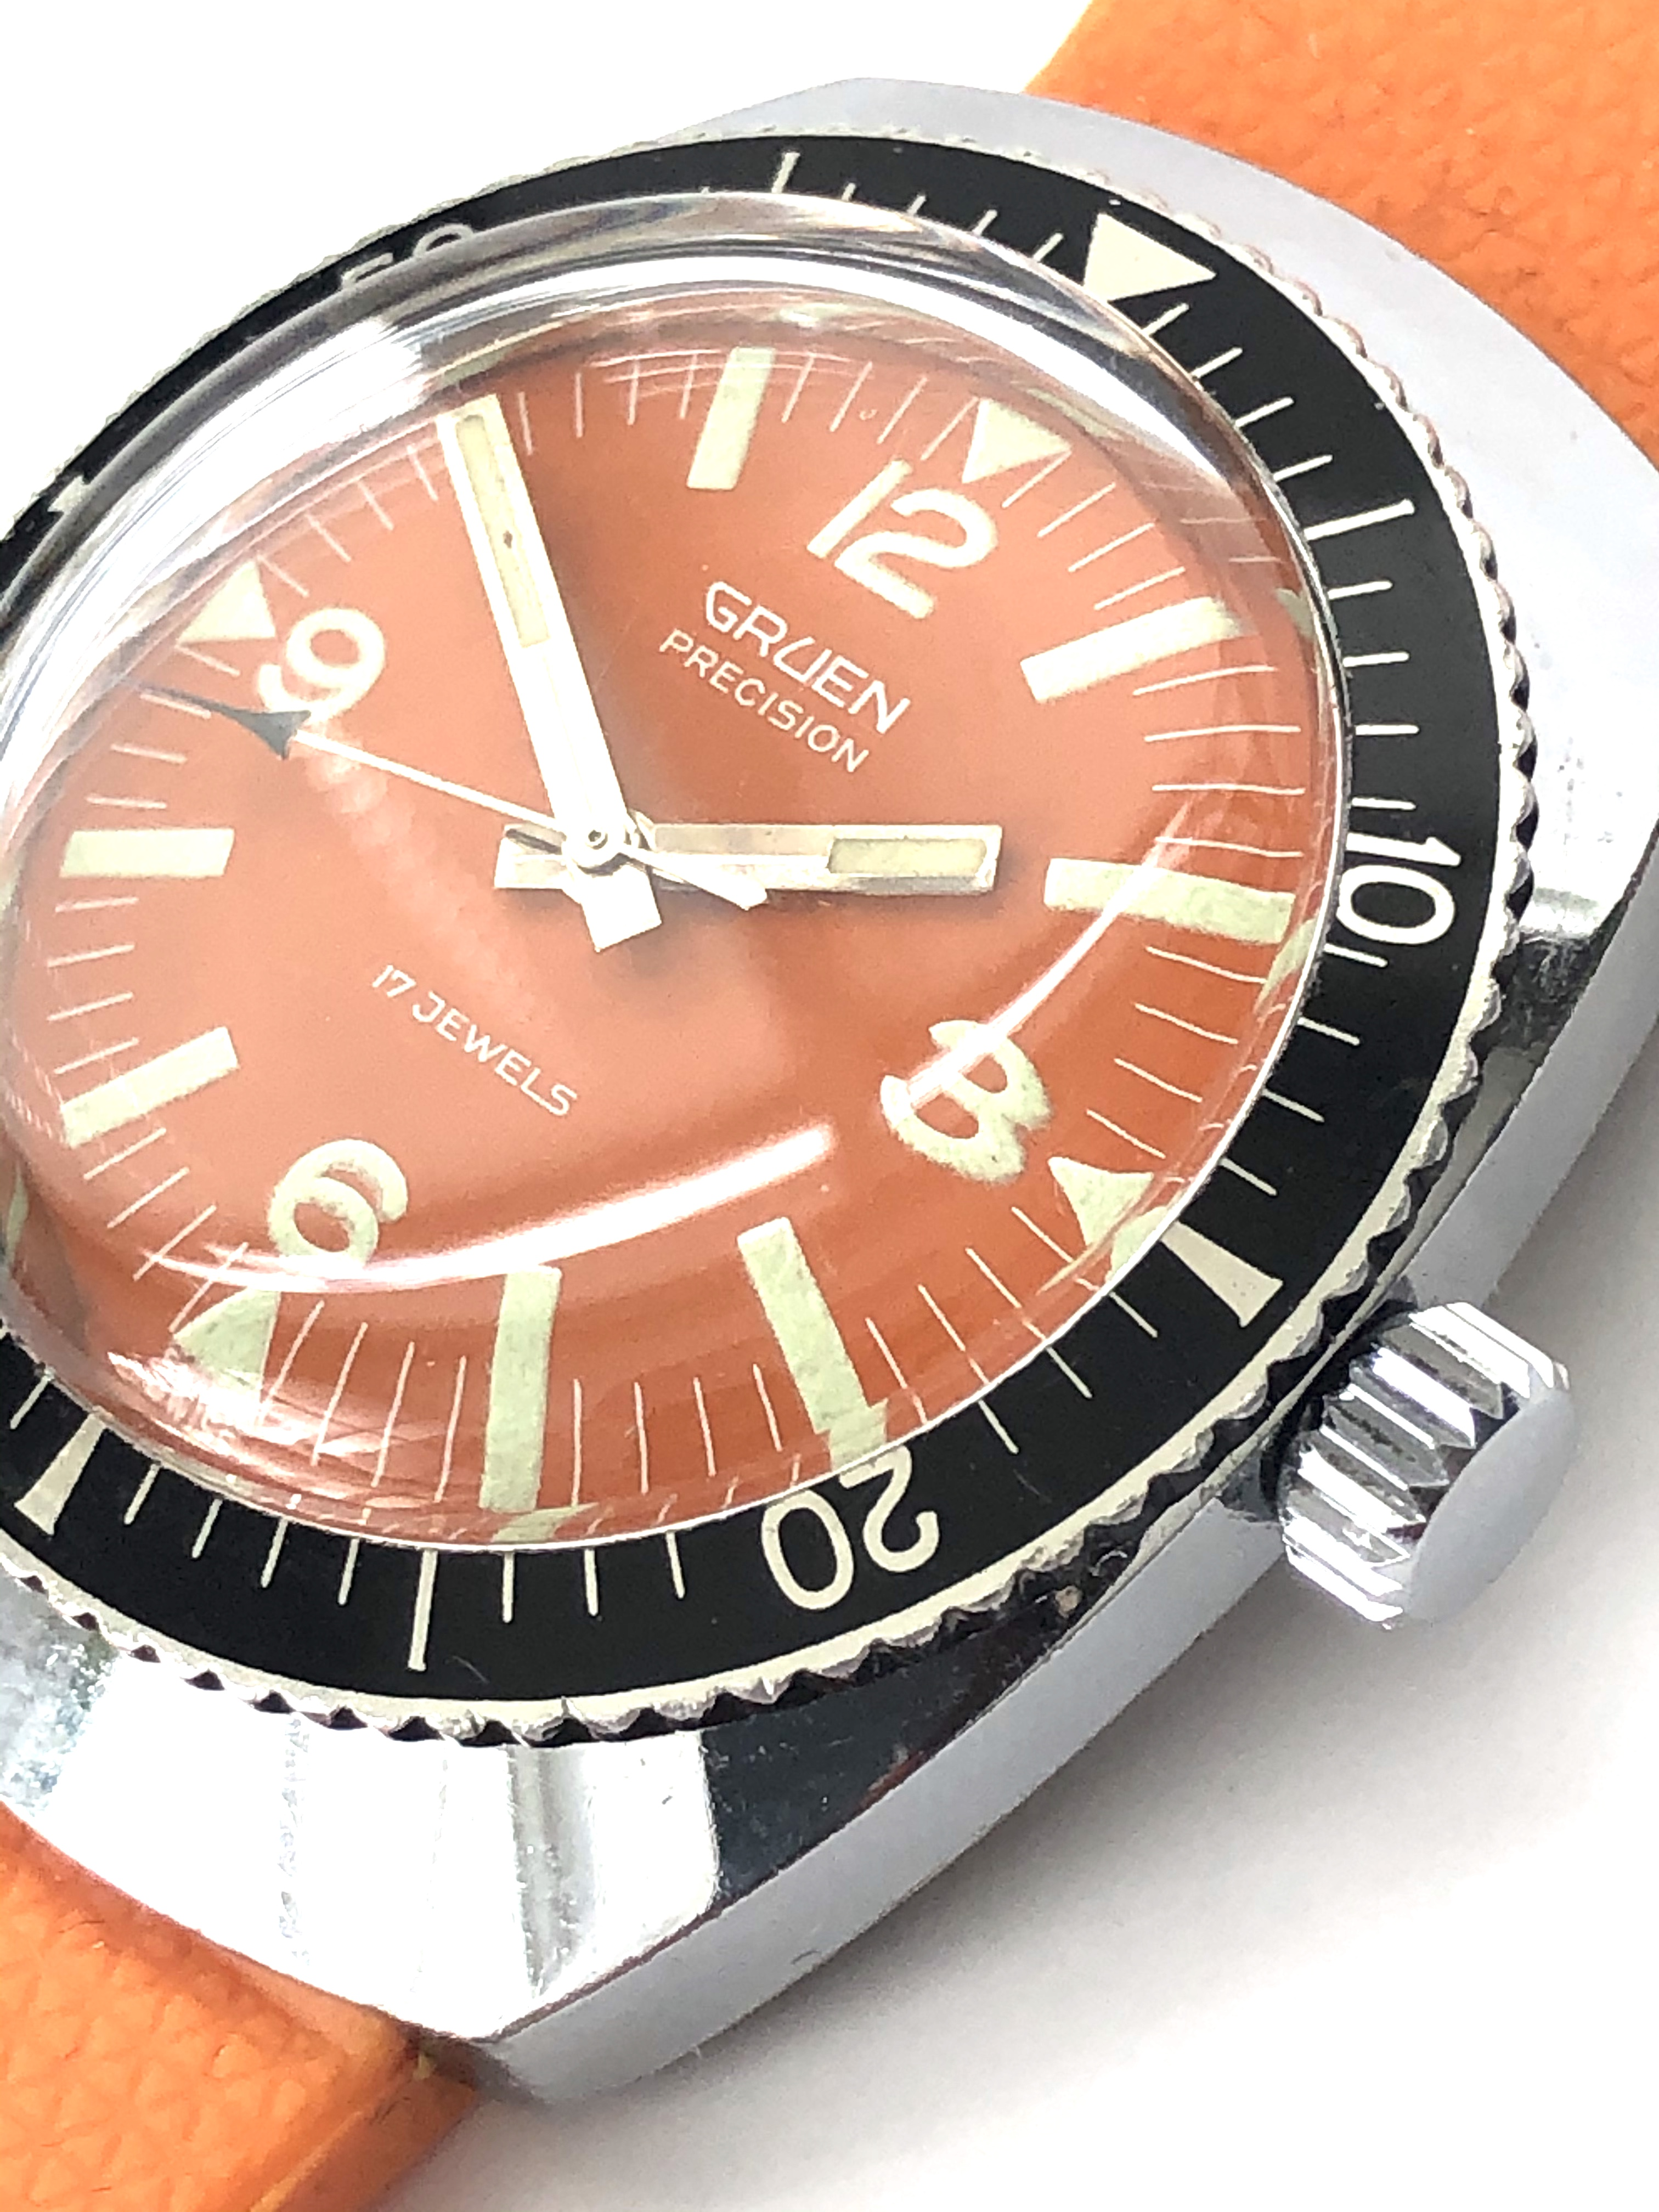 Lot 29 - Exceptional Vintage 1960s GRUEN Precision Exotic Dial Rotating Bezel Divers Watch